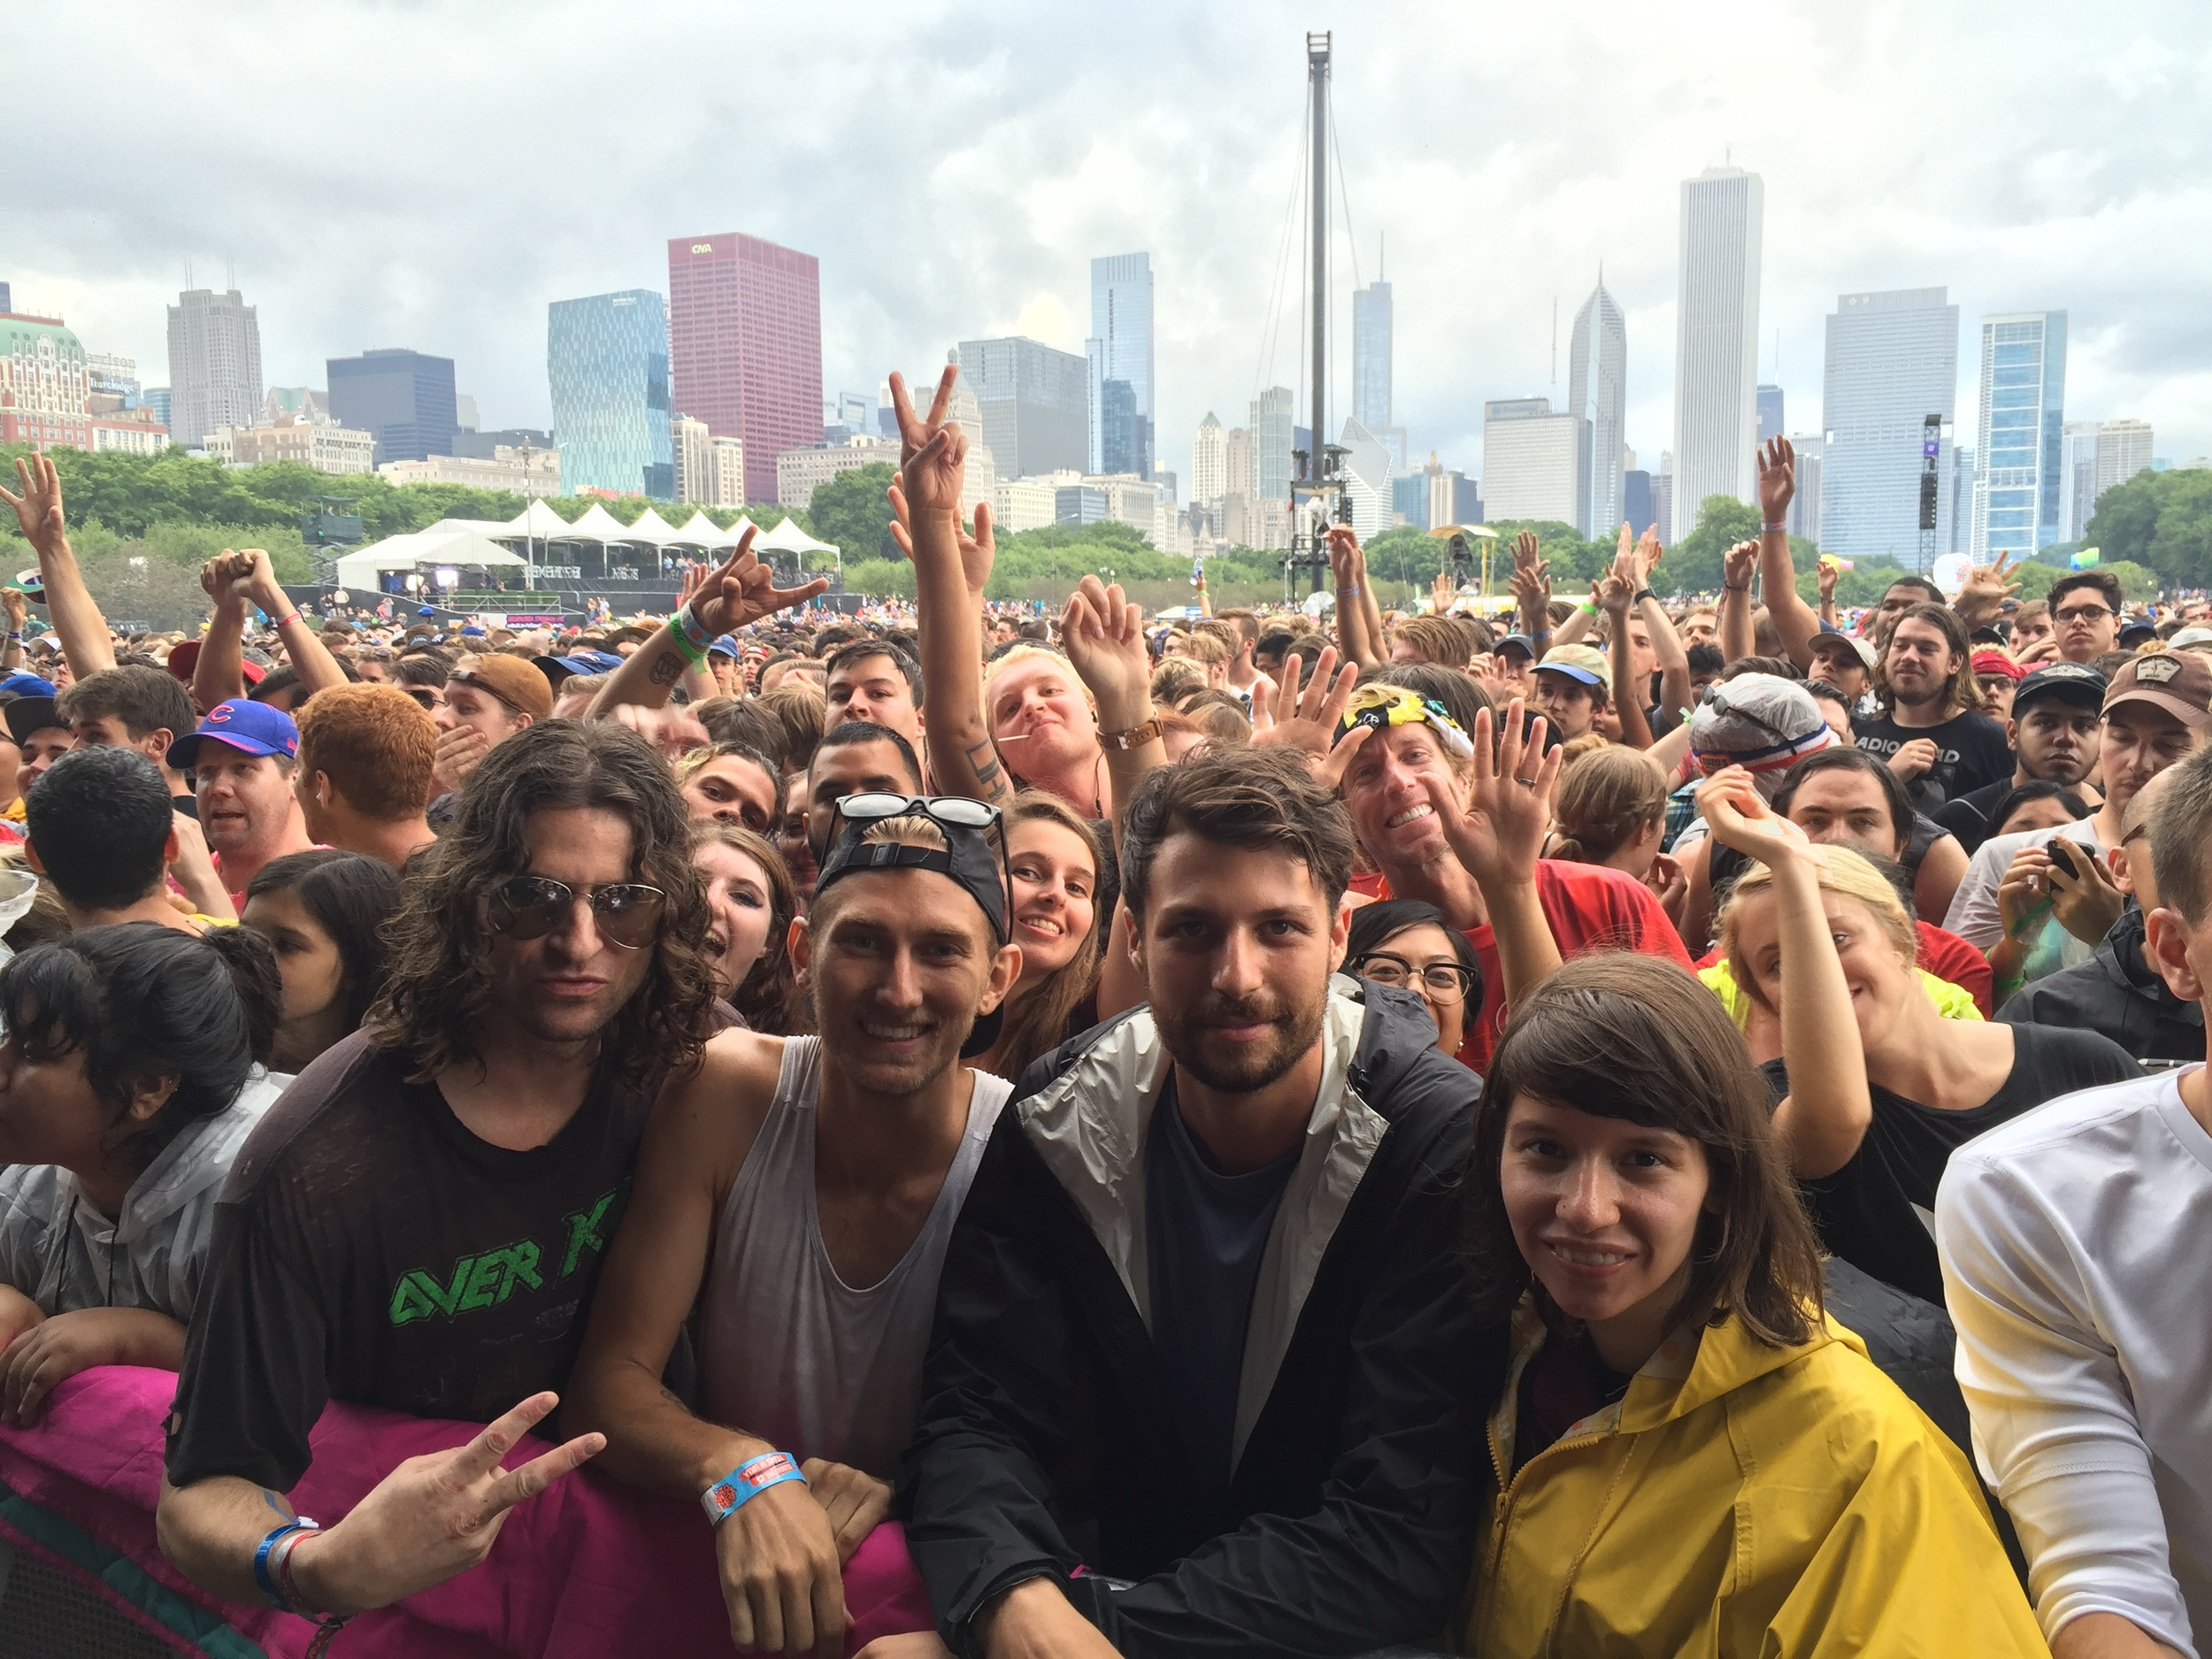 Lollapalooza, Chicago - July 29